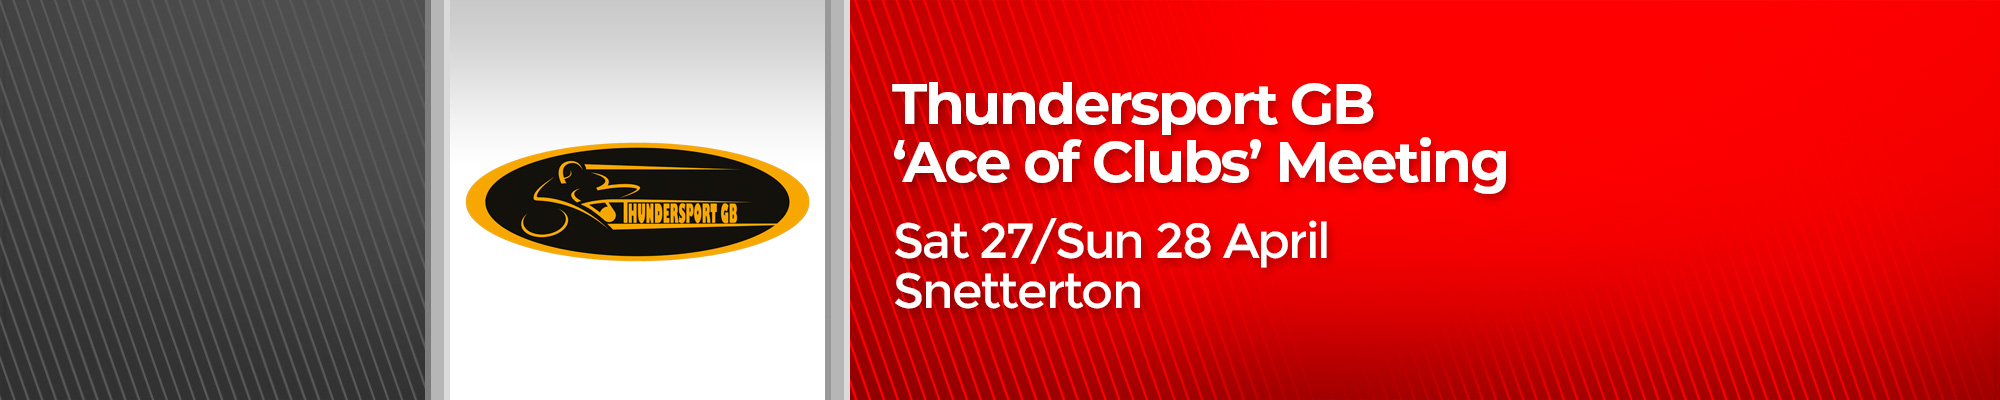 Thundersport GB 'Ace of Clubs'